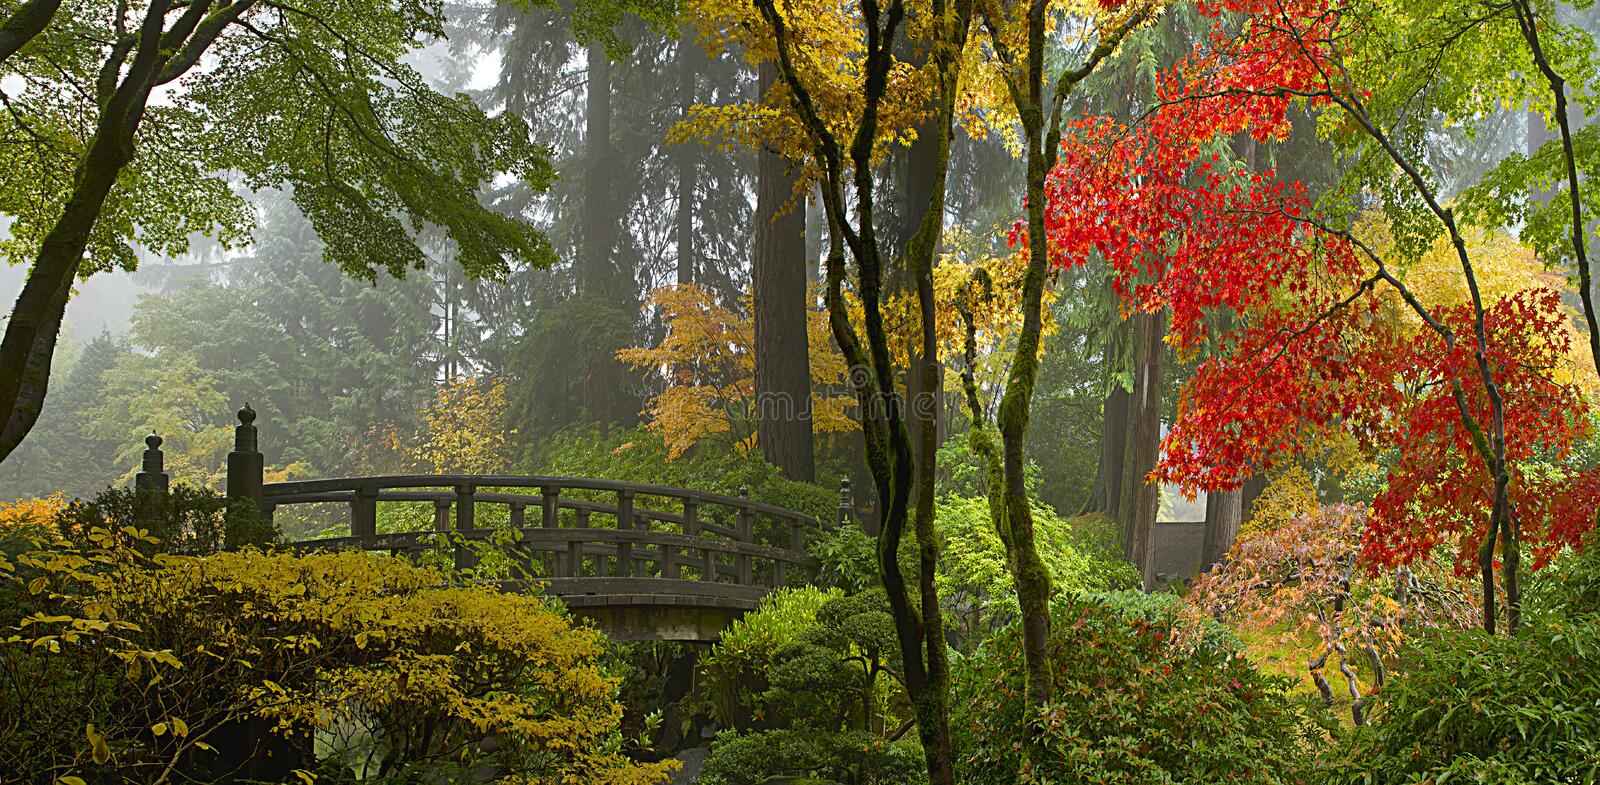 Wooden Bridge at Japanese Garden in Autumn royalty free stock photos